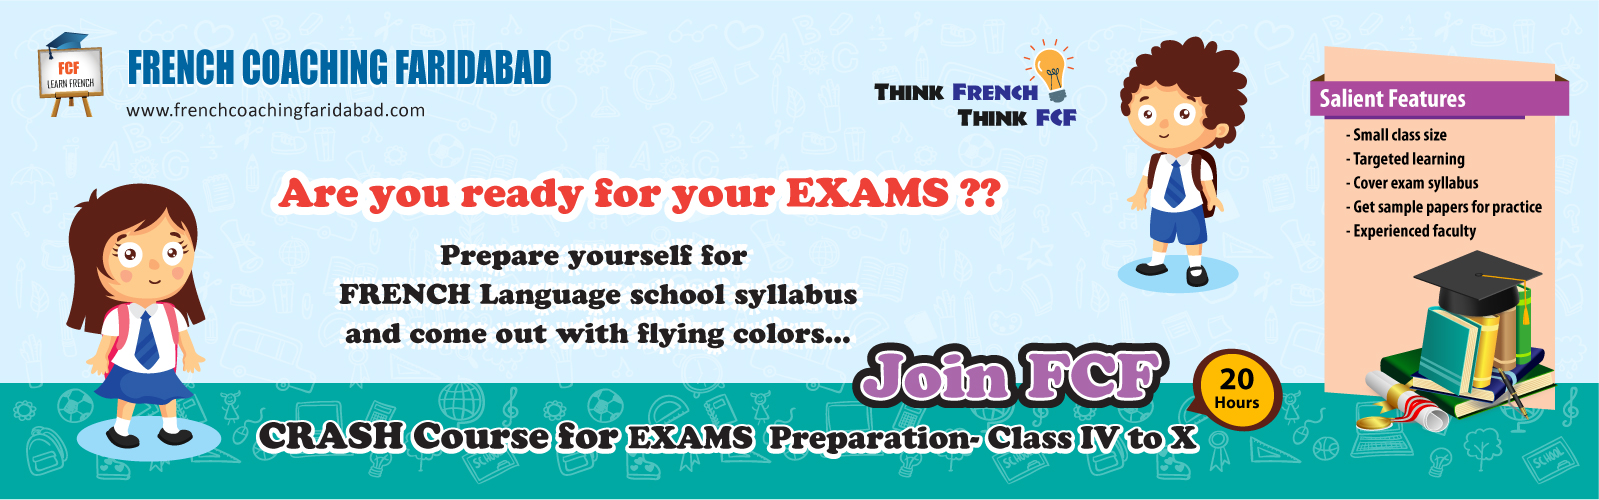 French Language Coaching classes for School Students in Faridabad